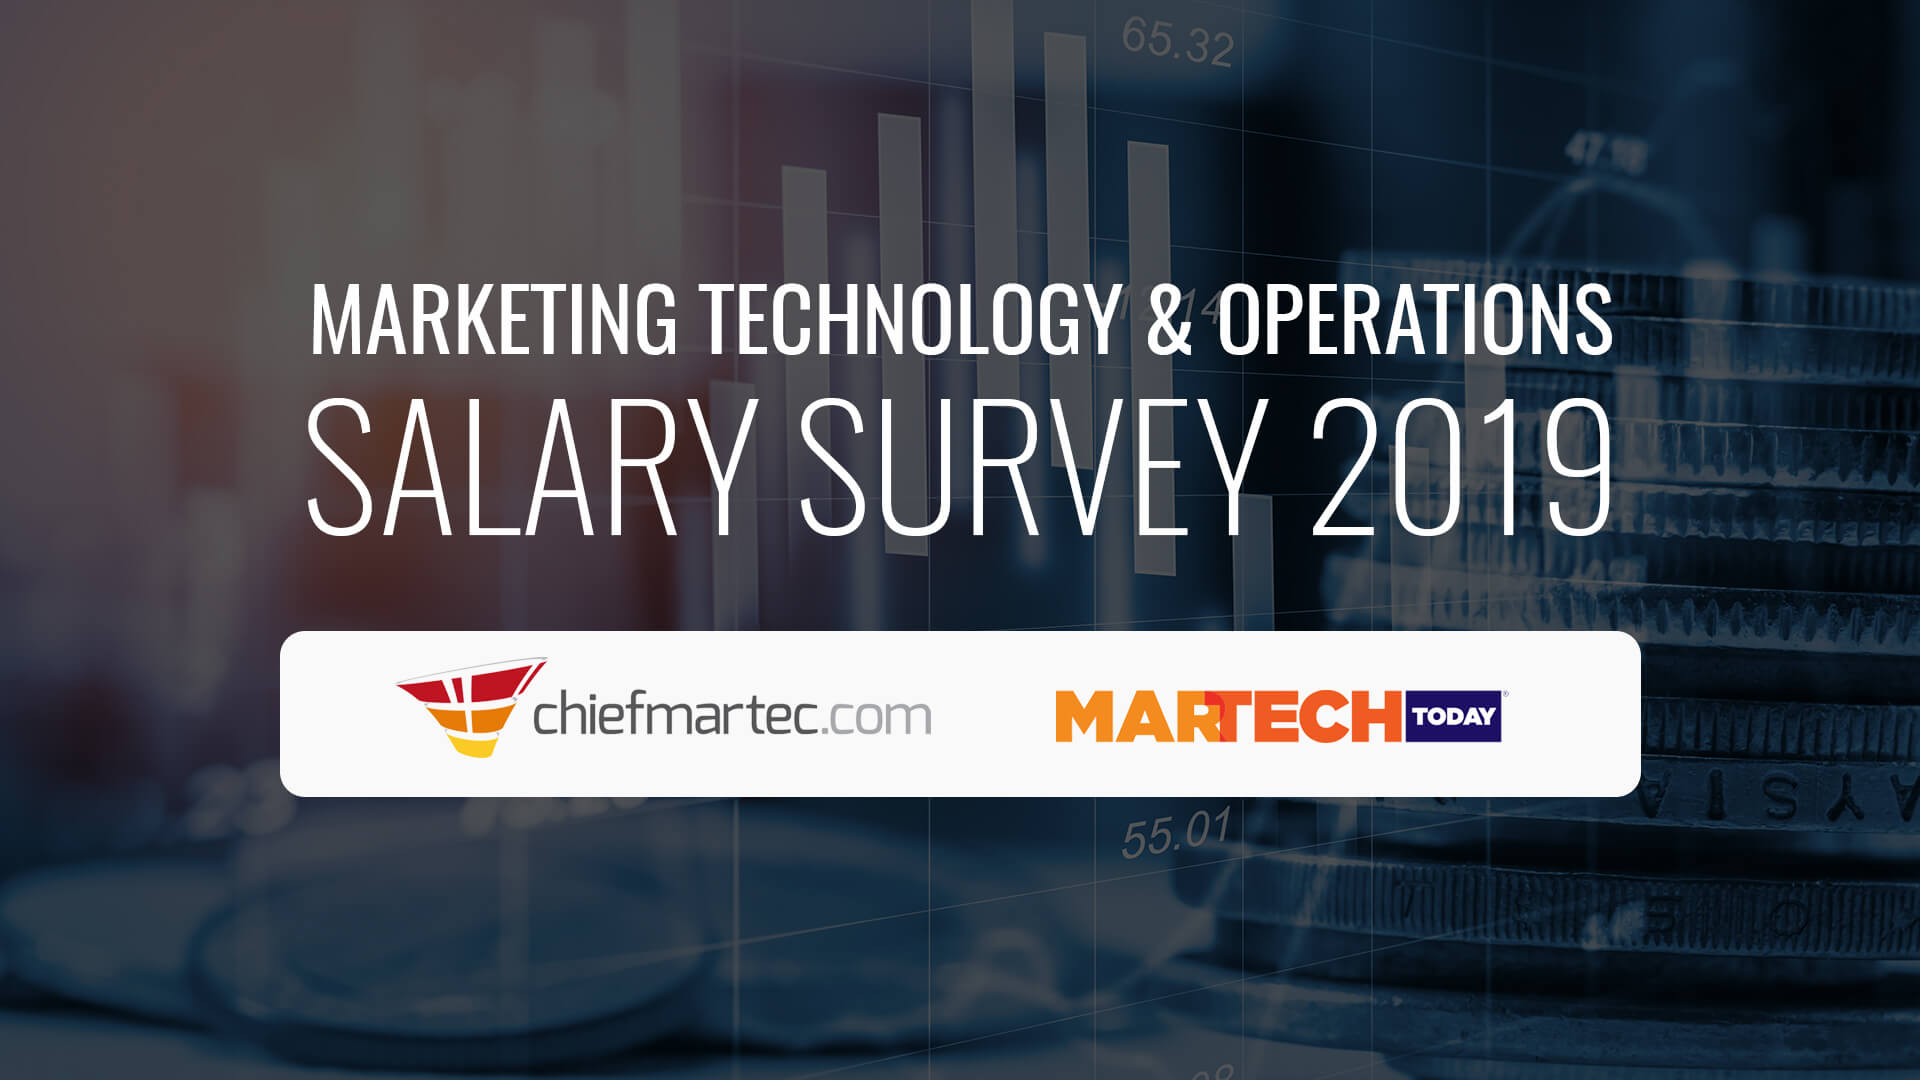 Marketing salary survey 2019: A global snapshot